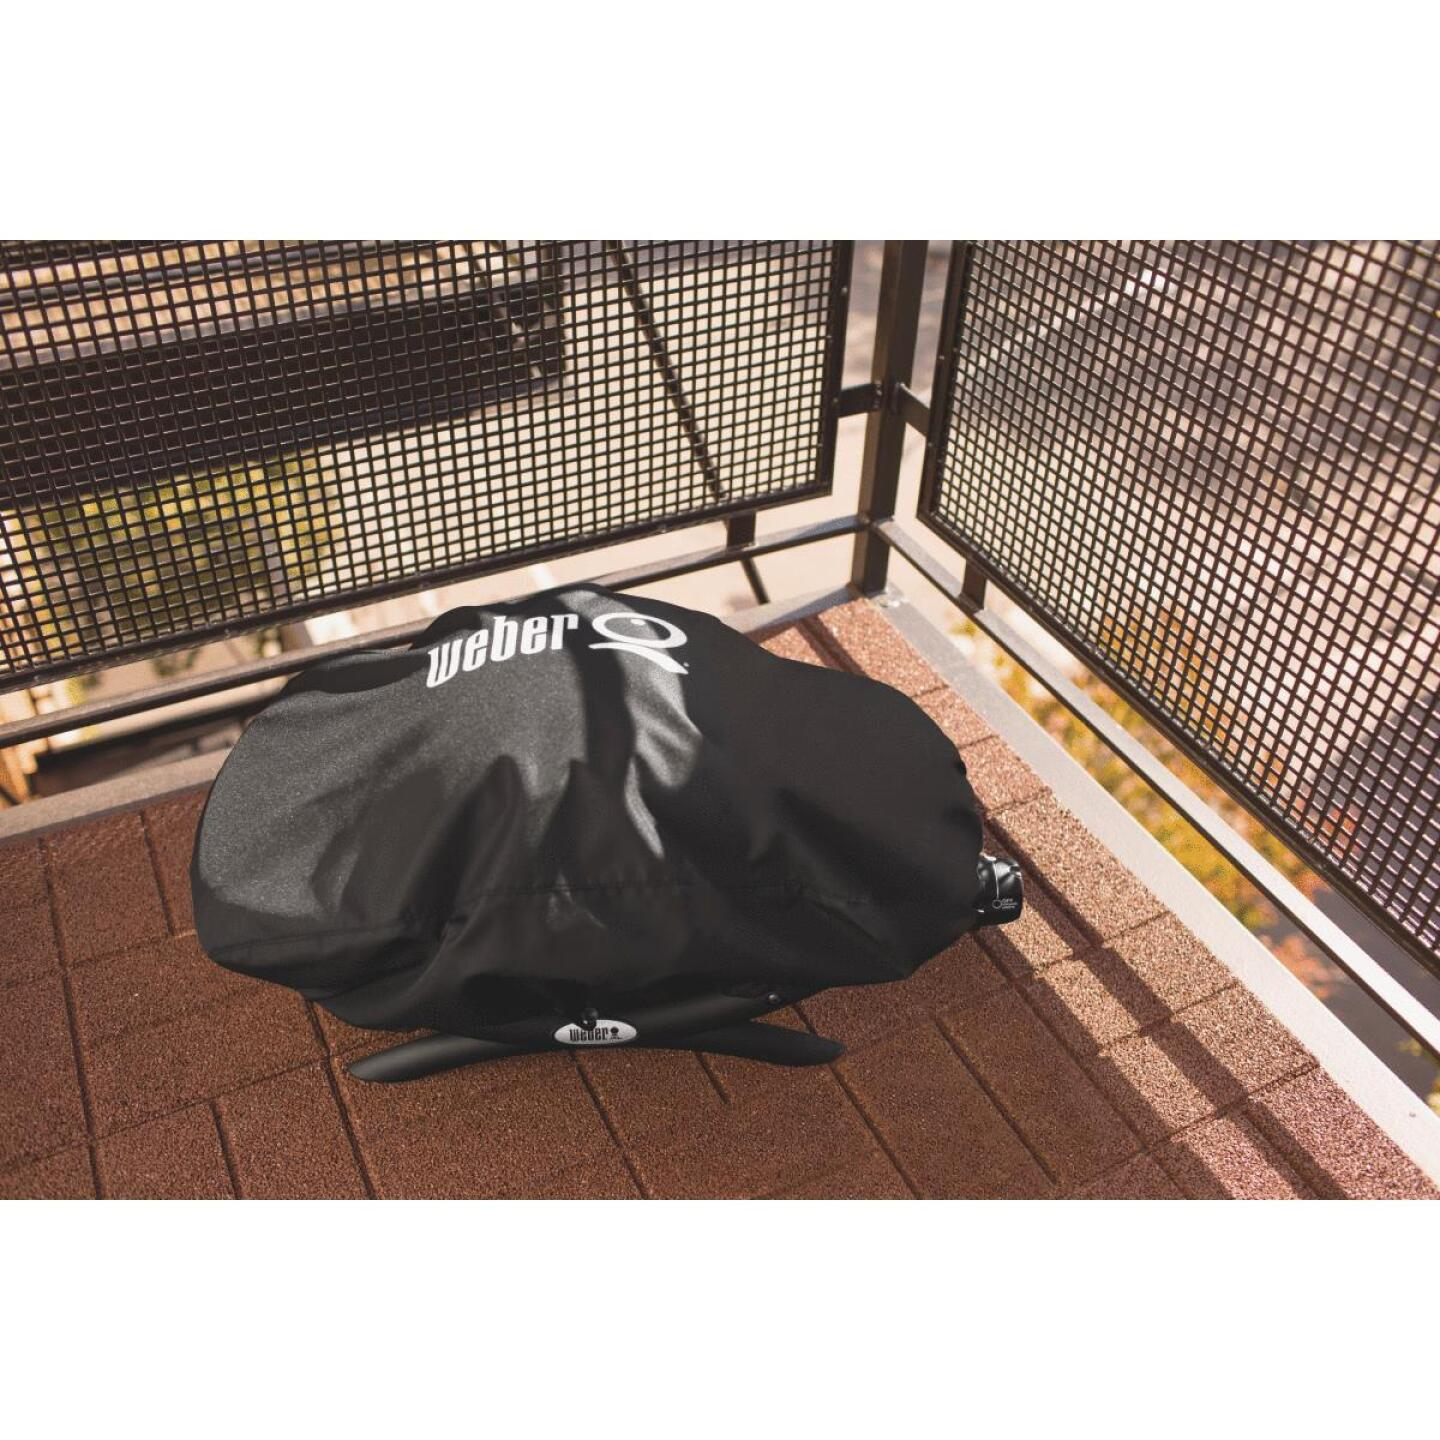 Weber Q 100/1000 27 In. Black Vinyl Grill Cover Image 2